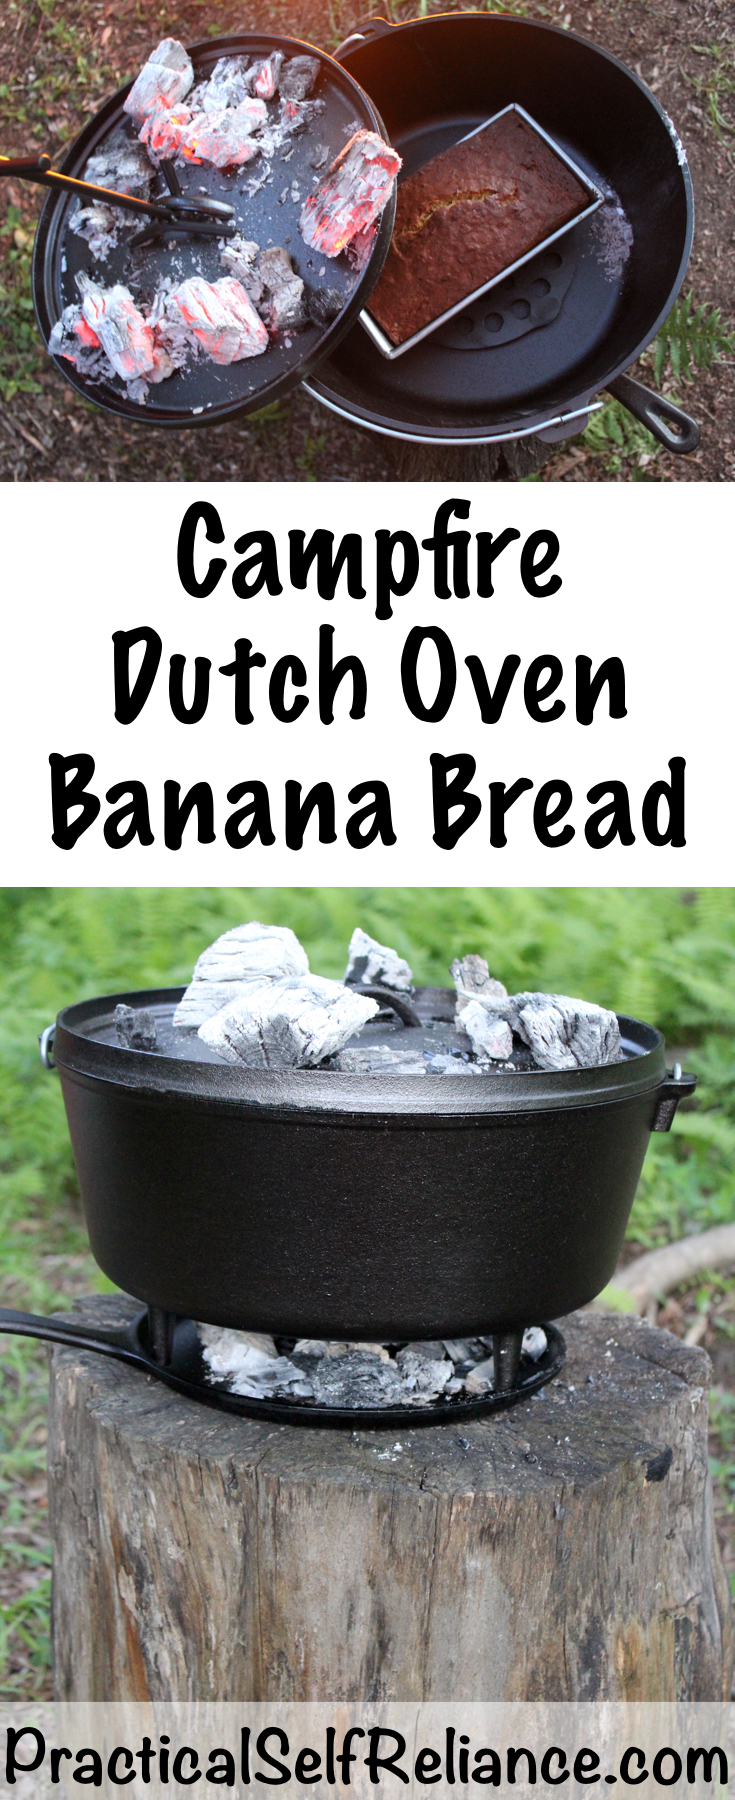 How To Bake Banana Bread In A Dutch Oven